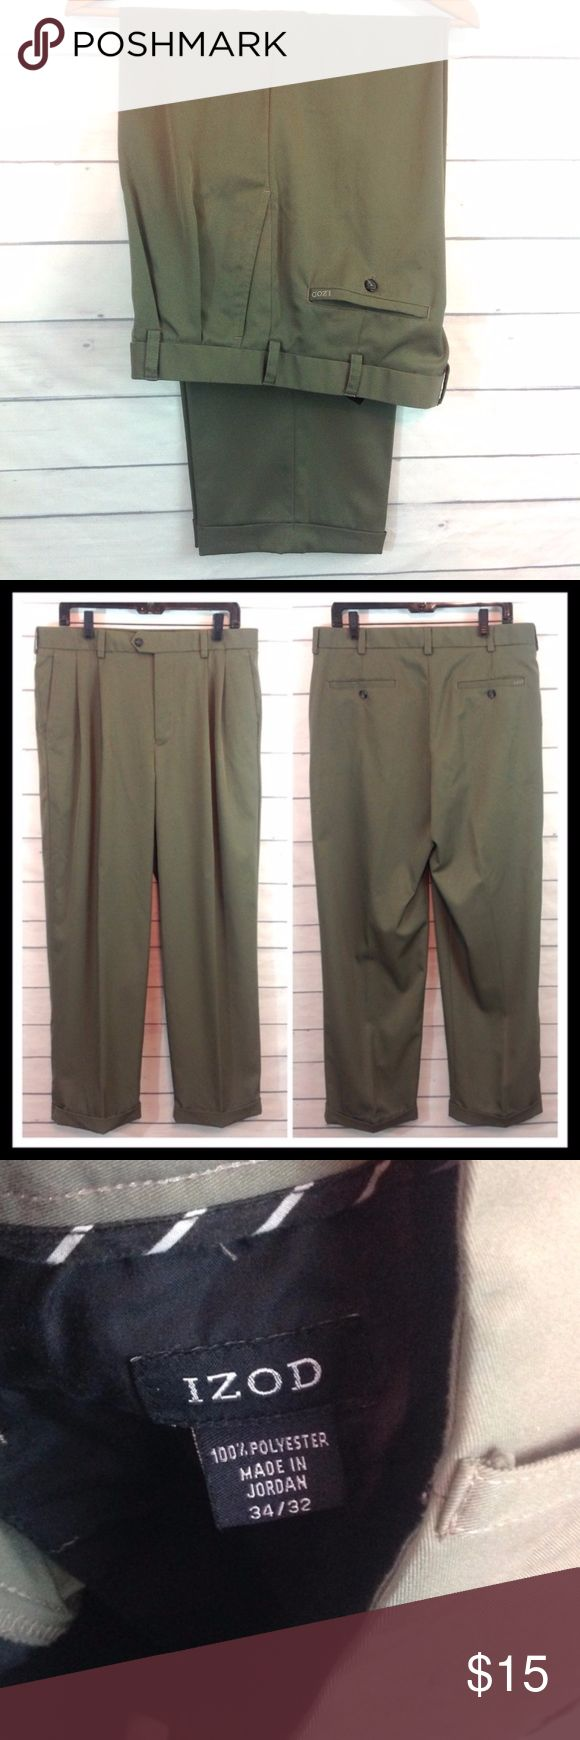 Izod Olive / Khaki Green Dress Pant 34 x 32 NWOT New without tags! Never worn Izod dress pant in khaki / olive green. Size 34 x 32. 100% polyester.  🔹Ask all questions before you purchase!  🔹No trades or holds. 🔹Bundle for best prices. Izod Pants Dress